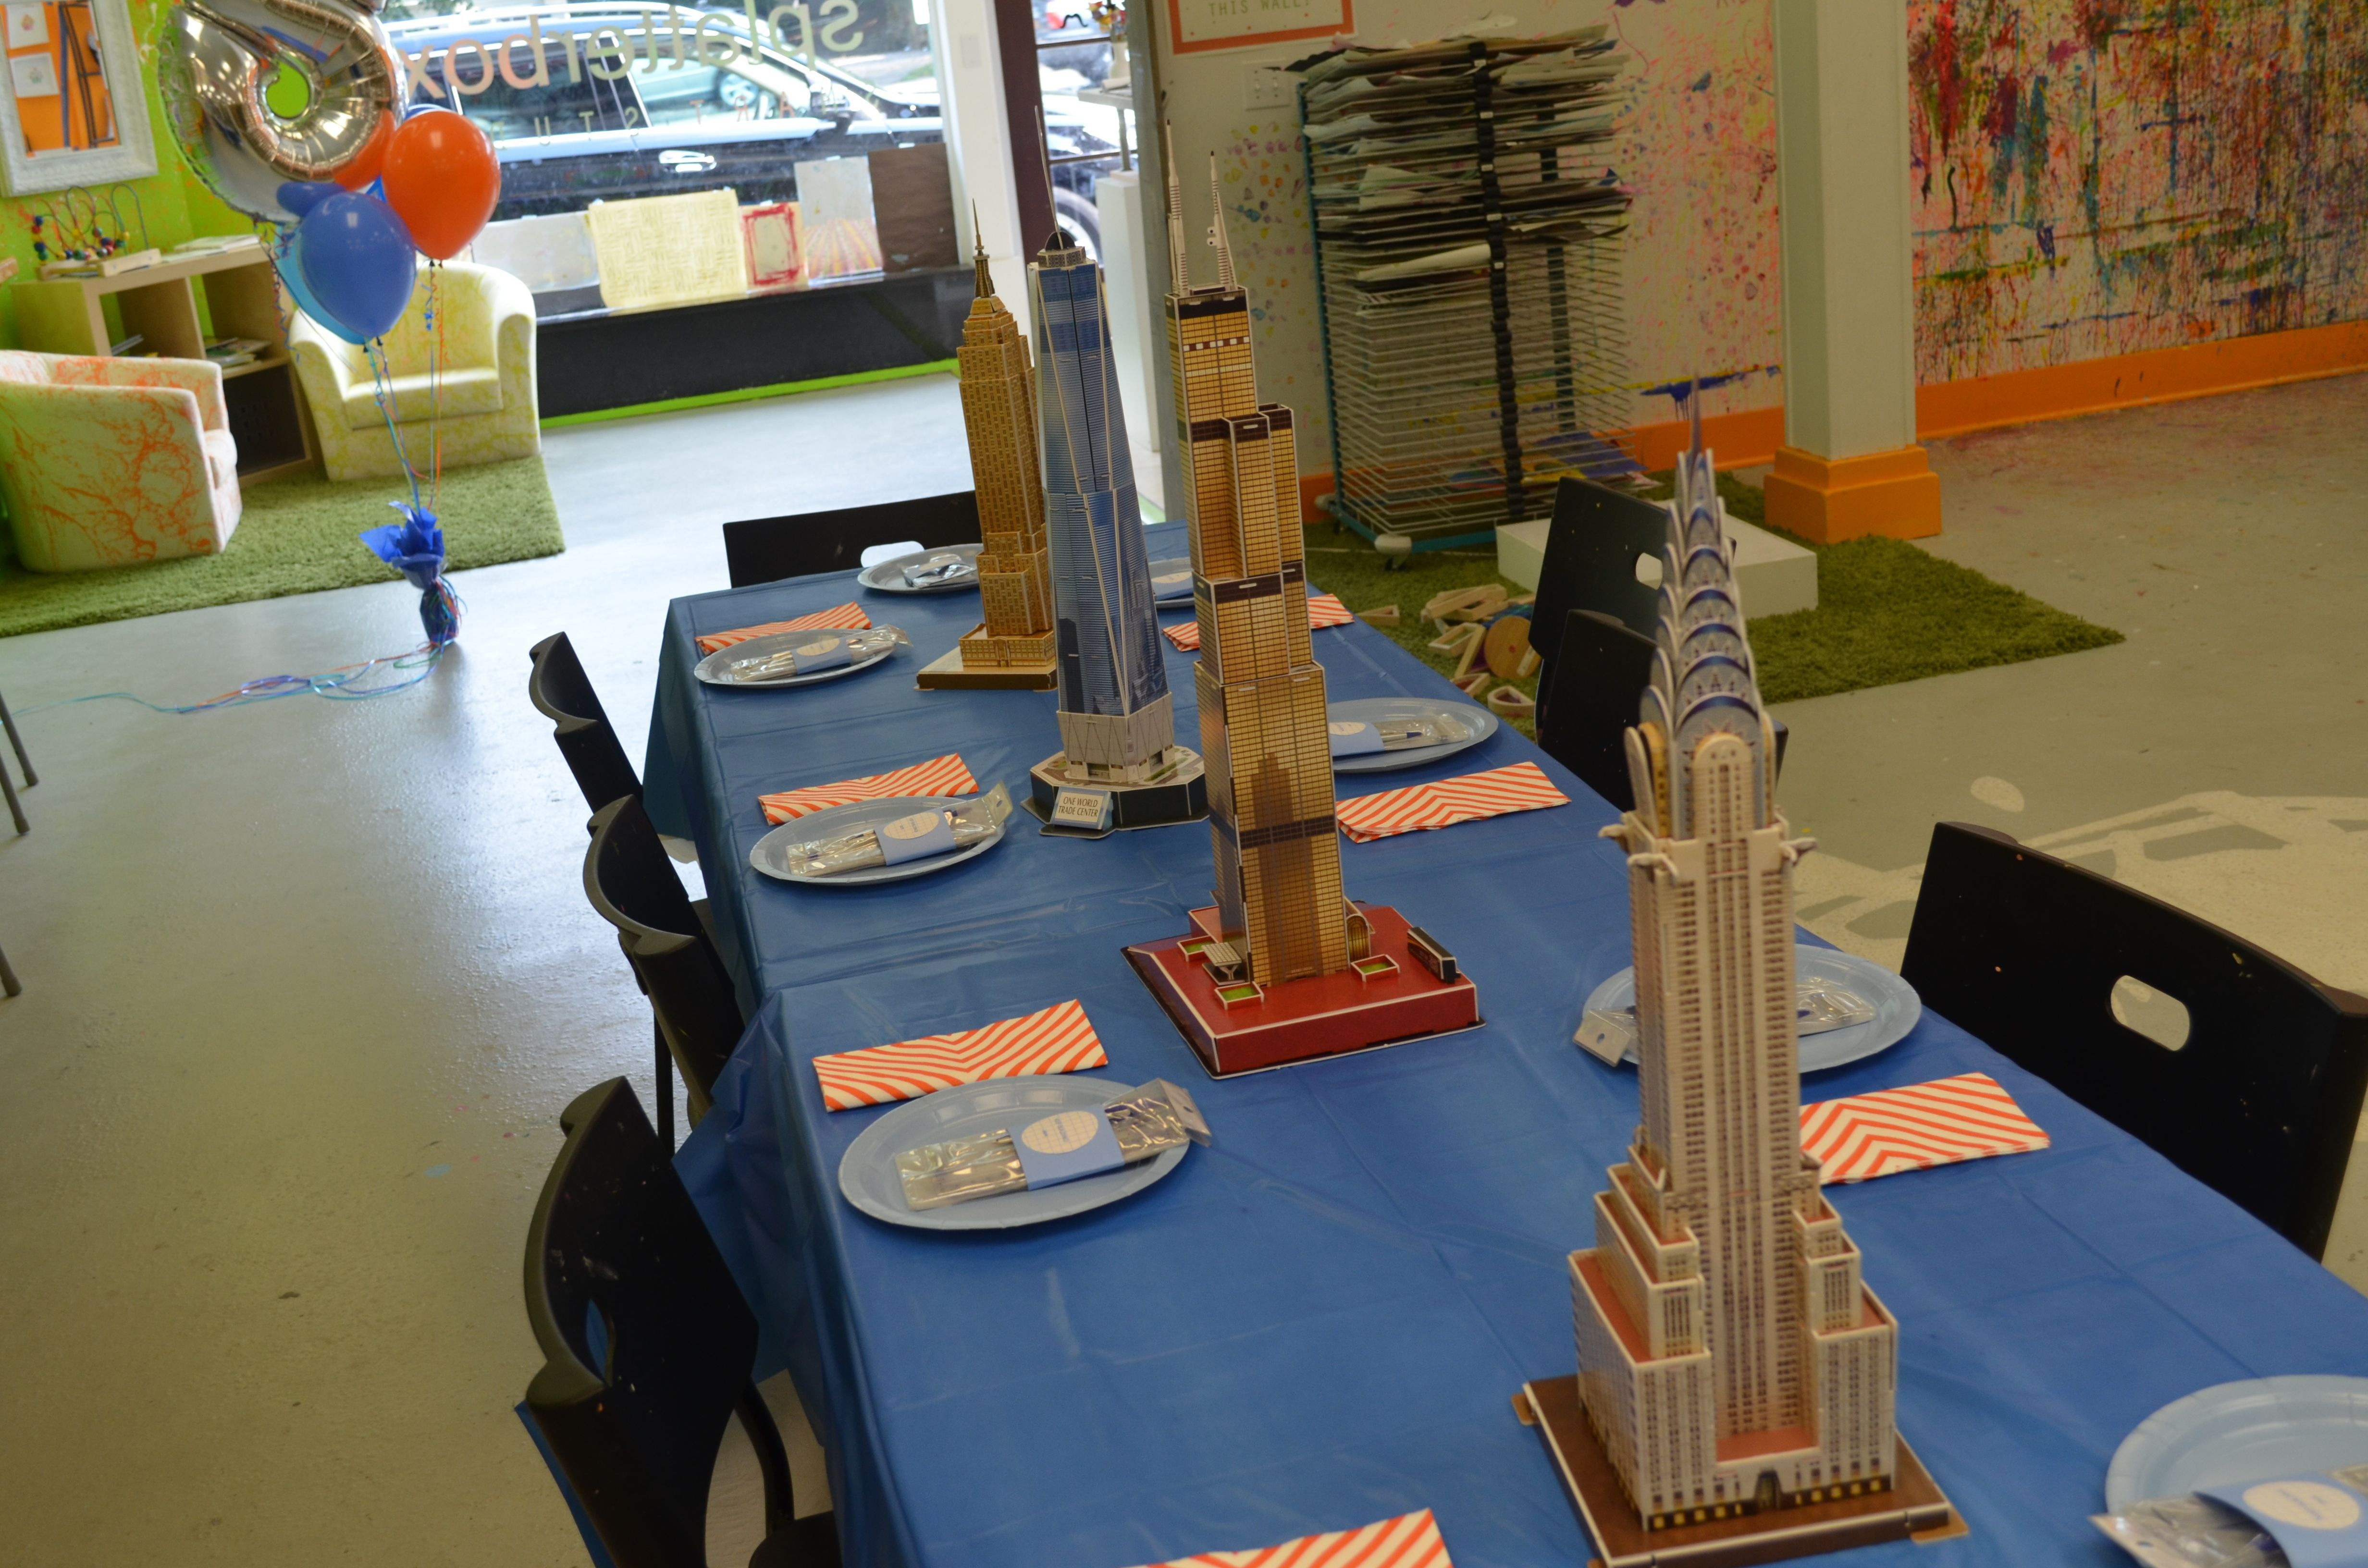 Architect Birthday Party--foam models of famous skyscrapers as centerpiece